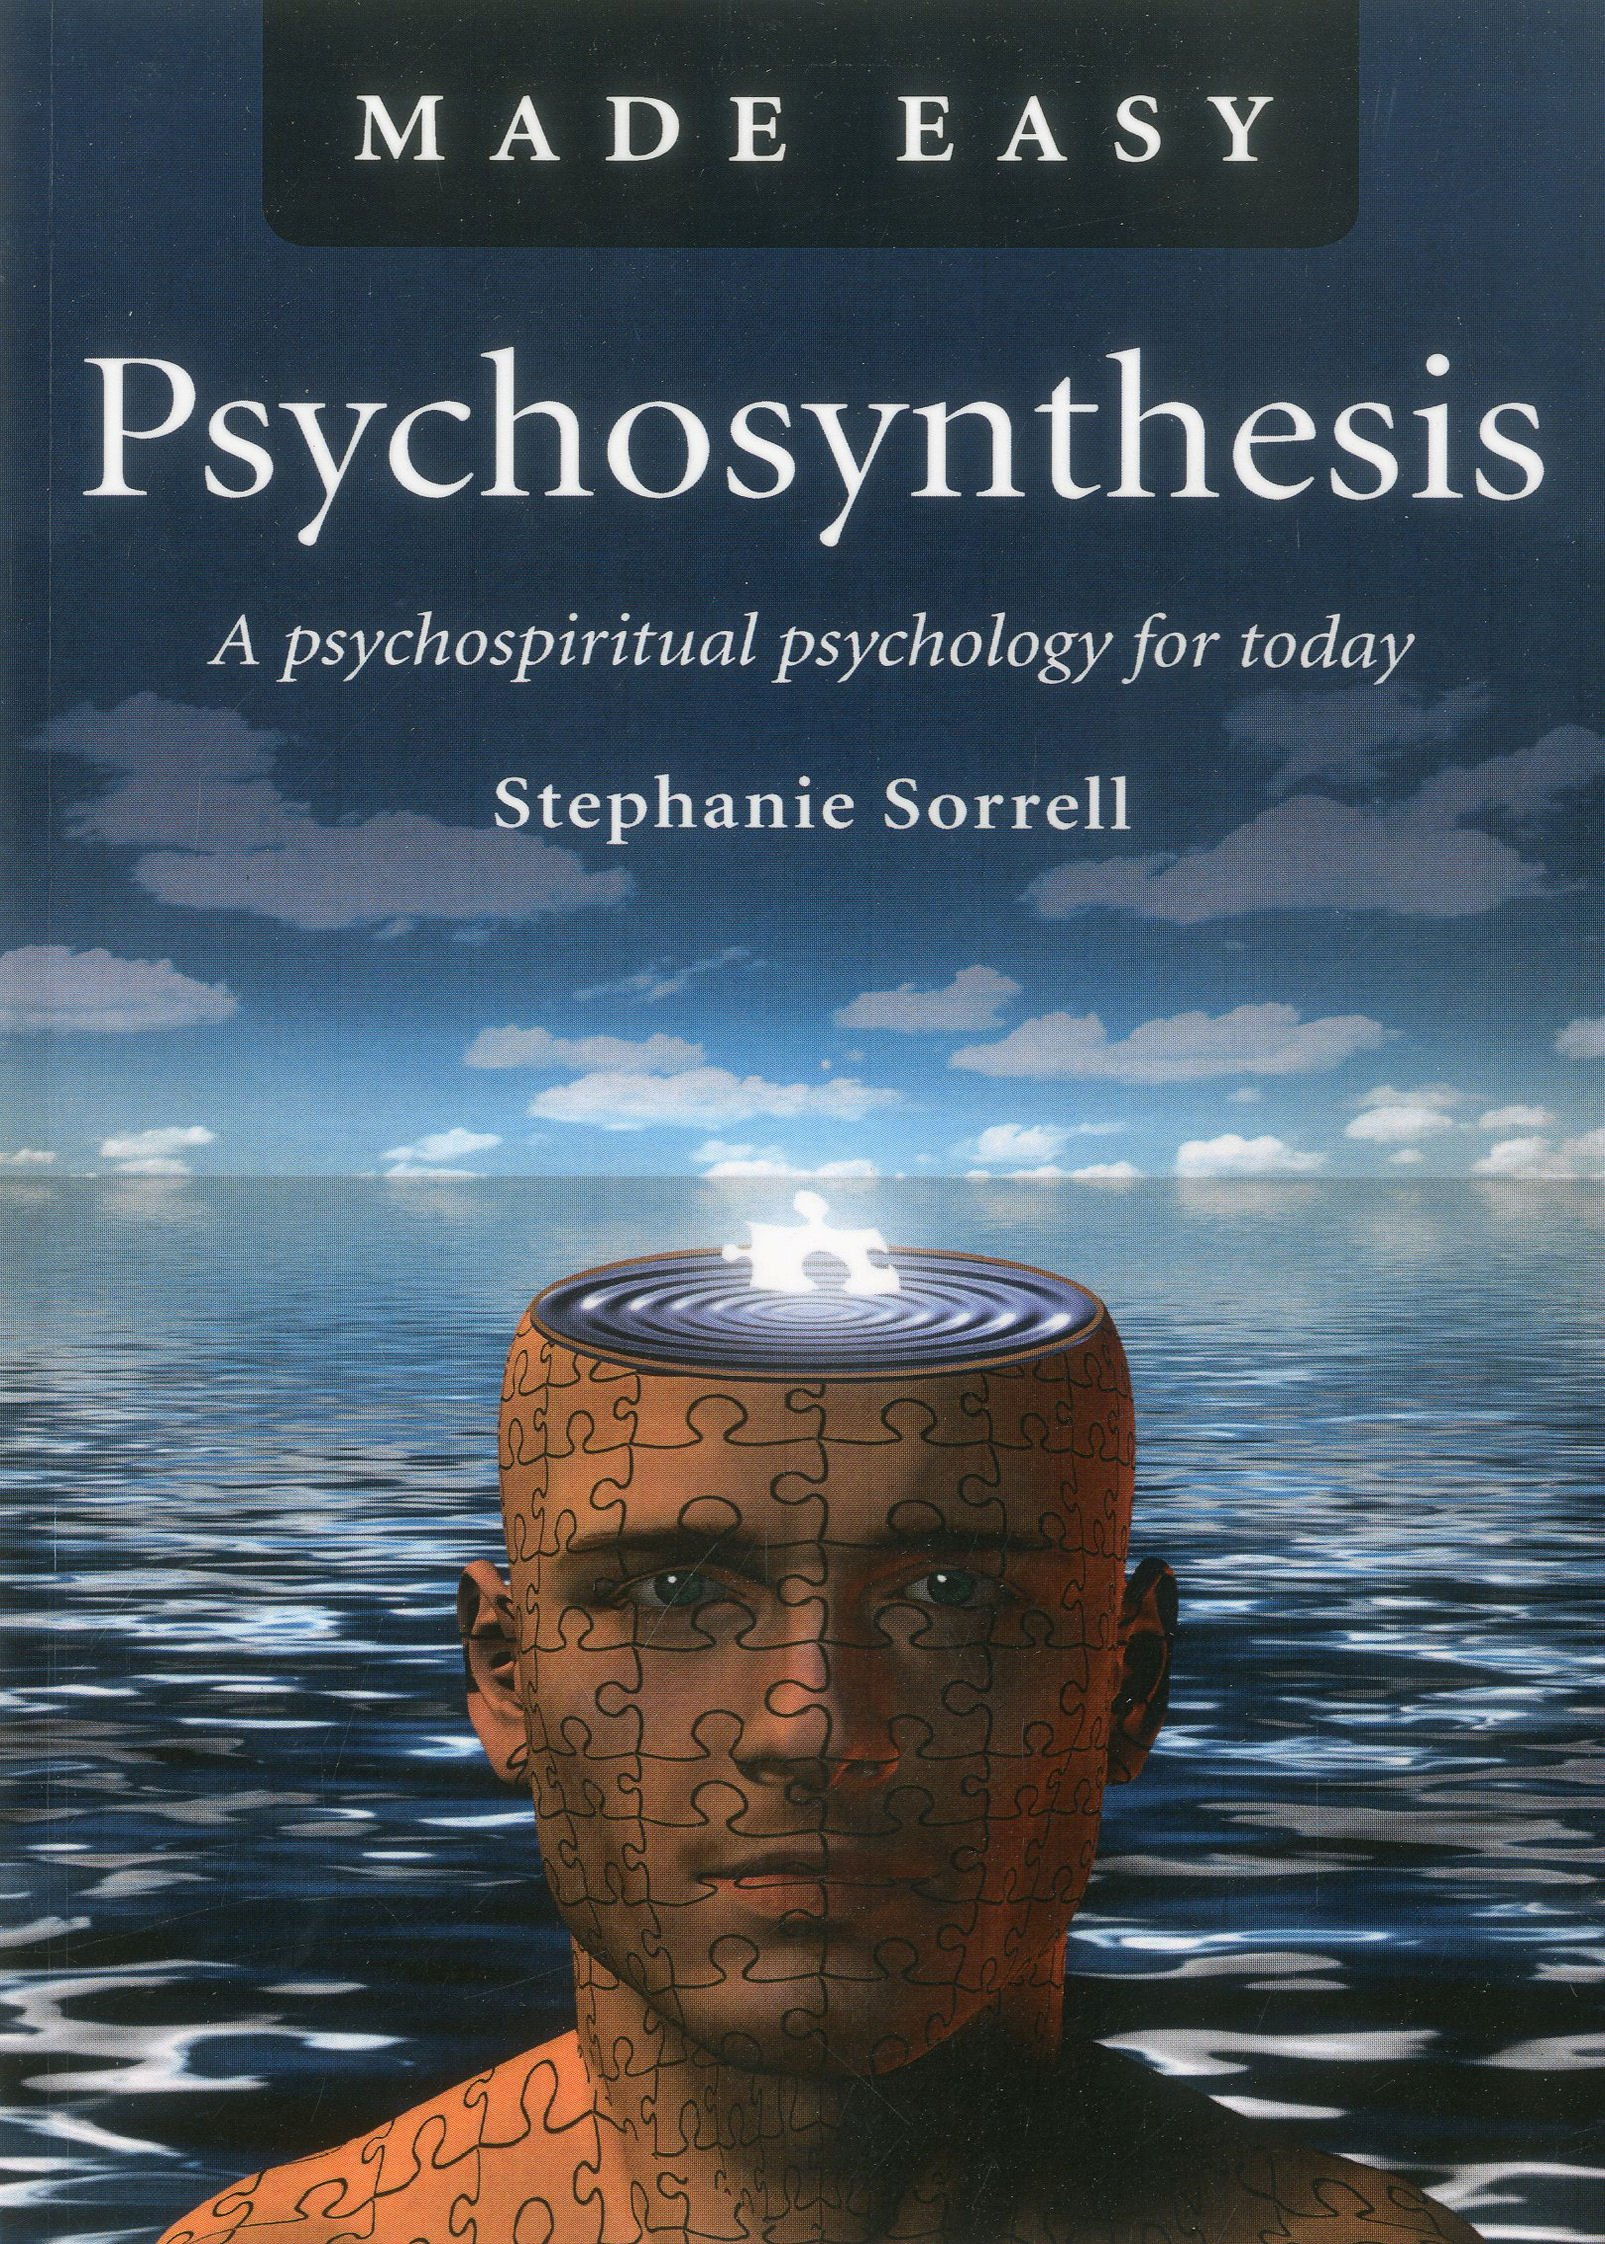 psychosynthesis trust london Training and qualifications i have a post graduate diploma in psychosynthesis counselling from the psychosynthesis and education trust, london.